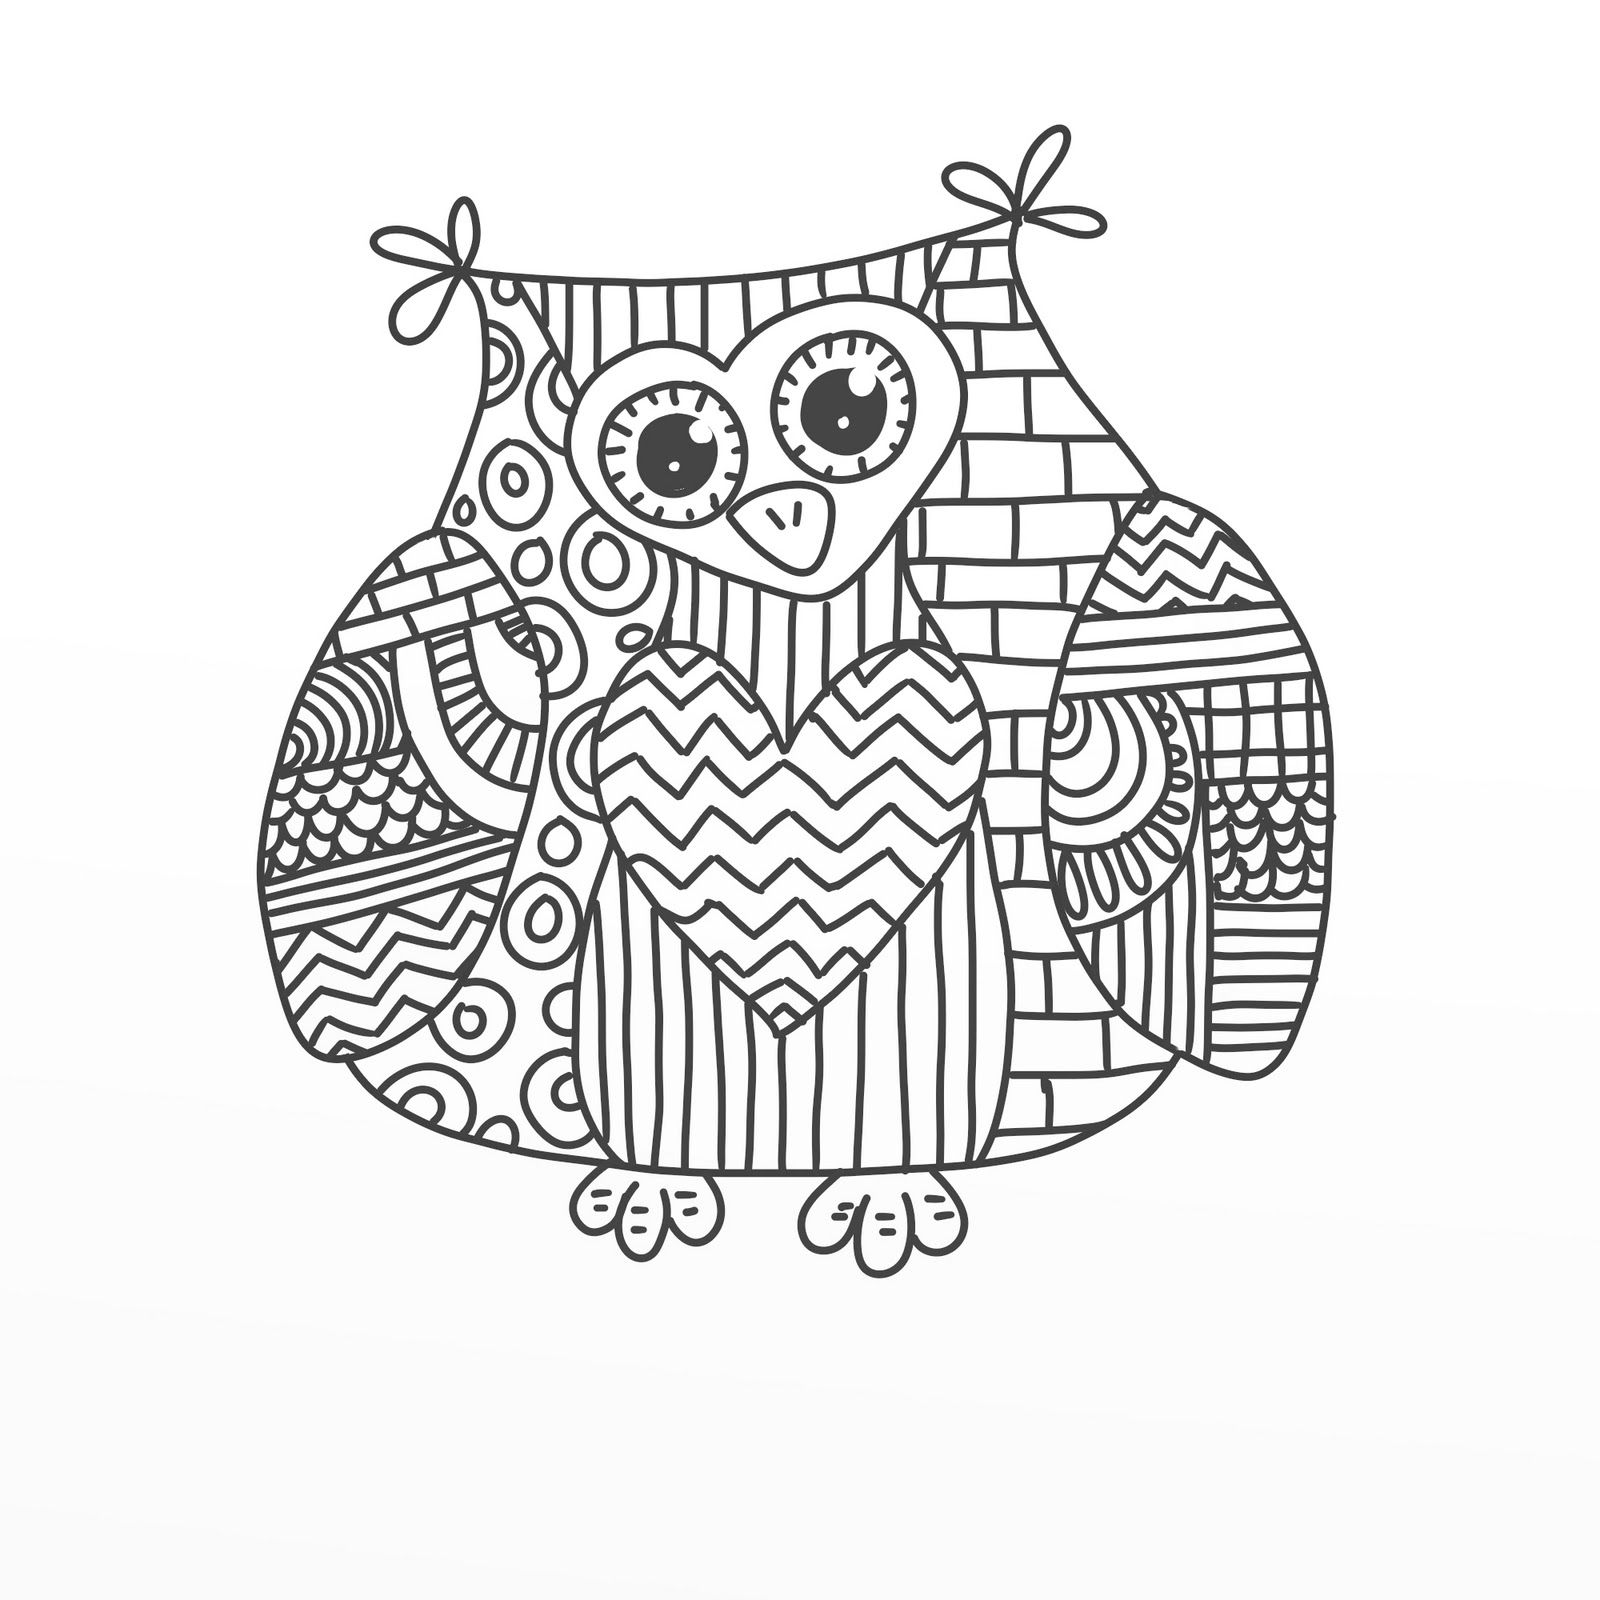 Cool Owl Coloring Pages - Coloring Home